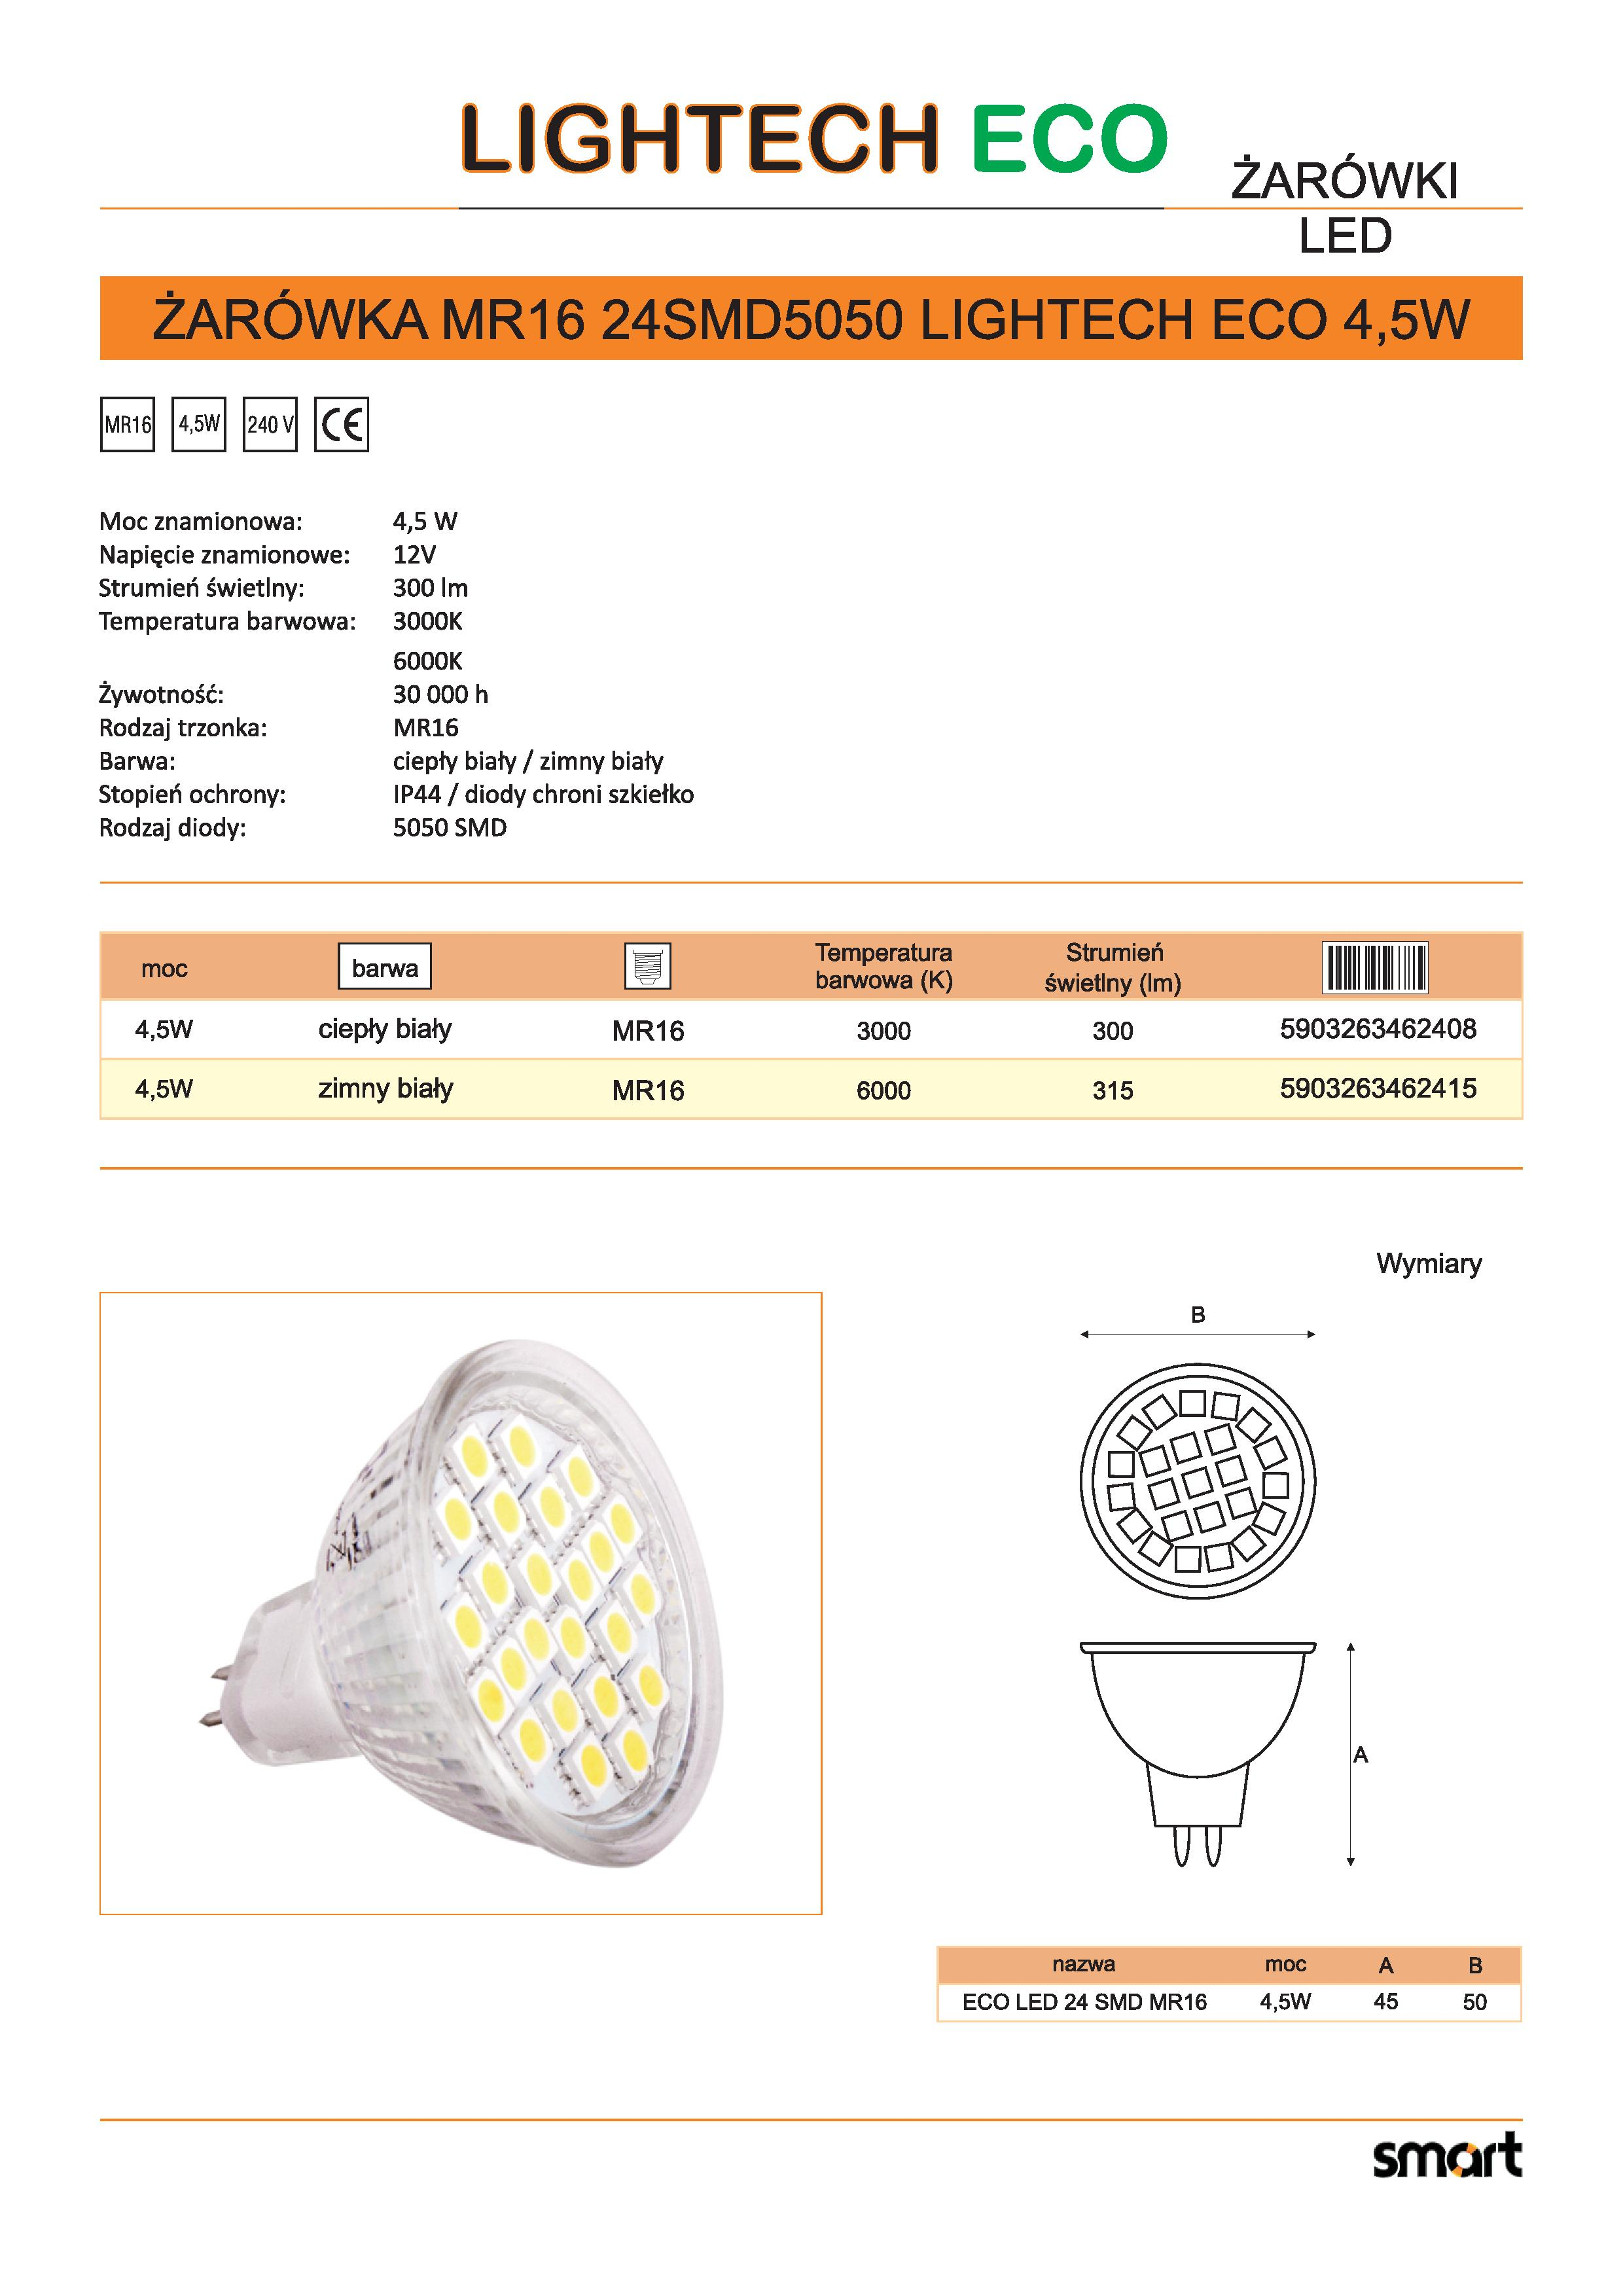 12v MR16 LED bulbs, MR16 LED bulb 230v, MR11 LED bulb 230v, 12v MR11 LED bulbs, 12V MR16 LED žárovky, MR16 LED žárovka 230V, MR11 LED žárovka 230V, 12V MR11 LED žárovky, 12v MR16 Светодиодные лампочки, Светодиодная лампа MR16 230v, MR11 Светодиодные лампы 230v, 12v MR11 Светодиодные лампочки, 12V MR16 LED žárovky, MR16 LED žárovka 230, MR11 LED žárovka 230, 12V MR11 LED žárovky, 12v MR16 LED-Lampen, MR16 LED-Lampe 230V, MR11 LED-Lampe 230V, 12v MR11 LED-Lampen,